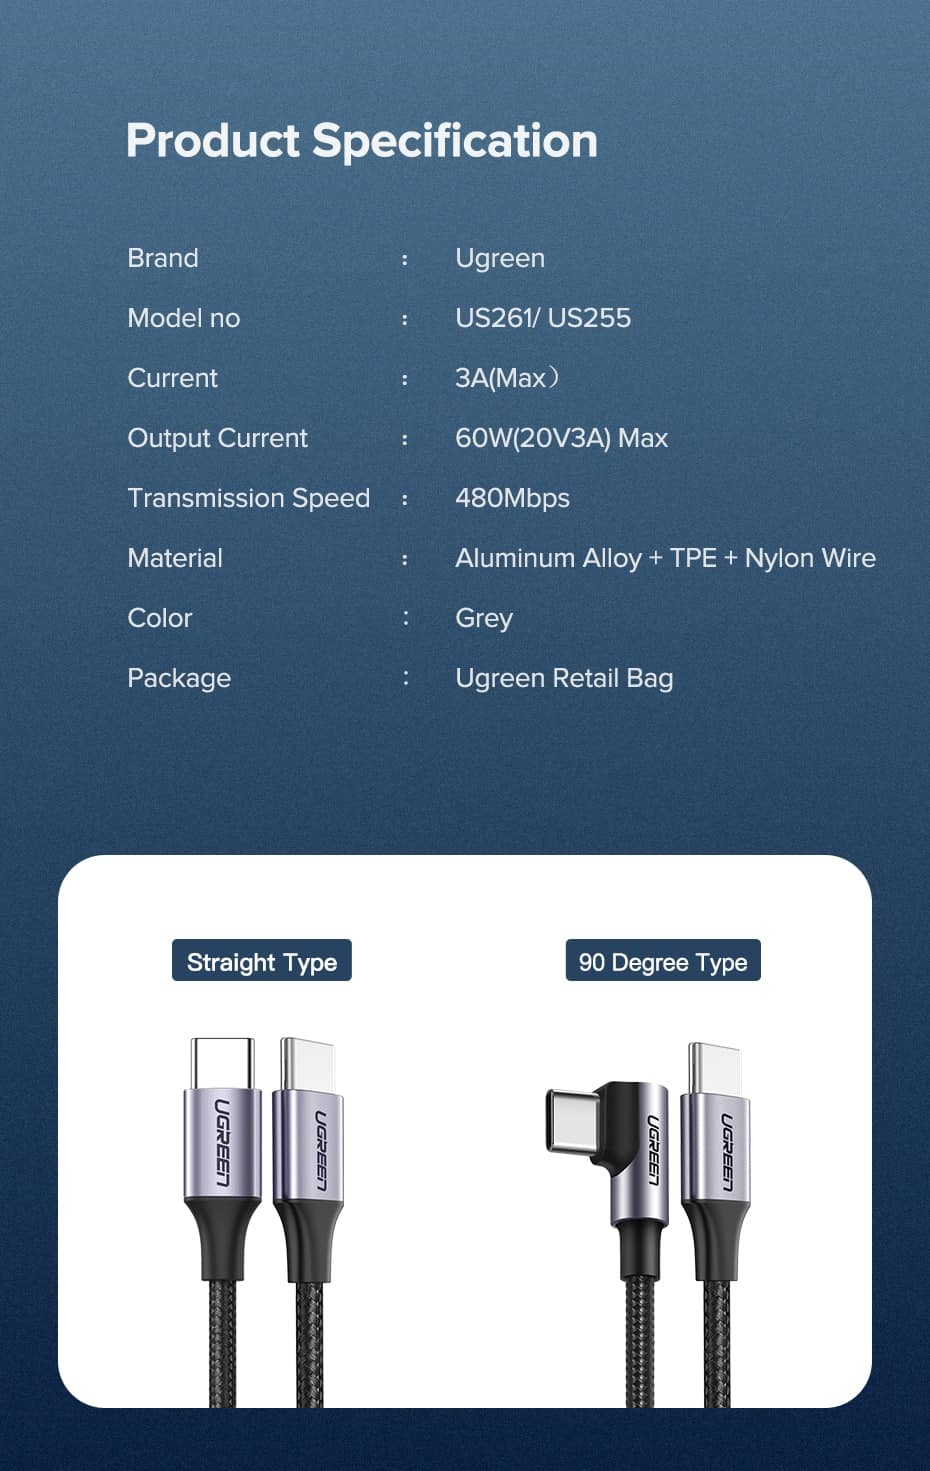 Ugreen USB Type C to USB C Cable 60W Product Specification